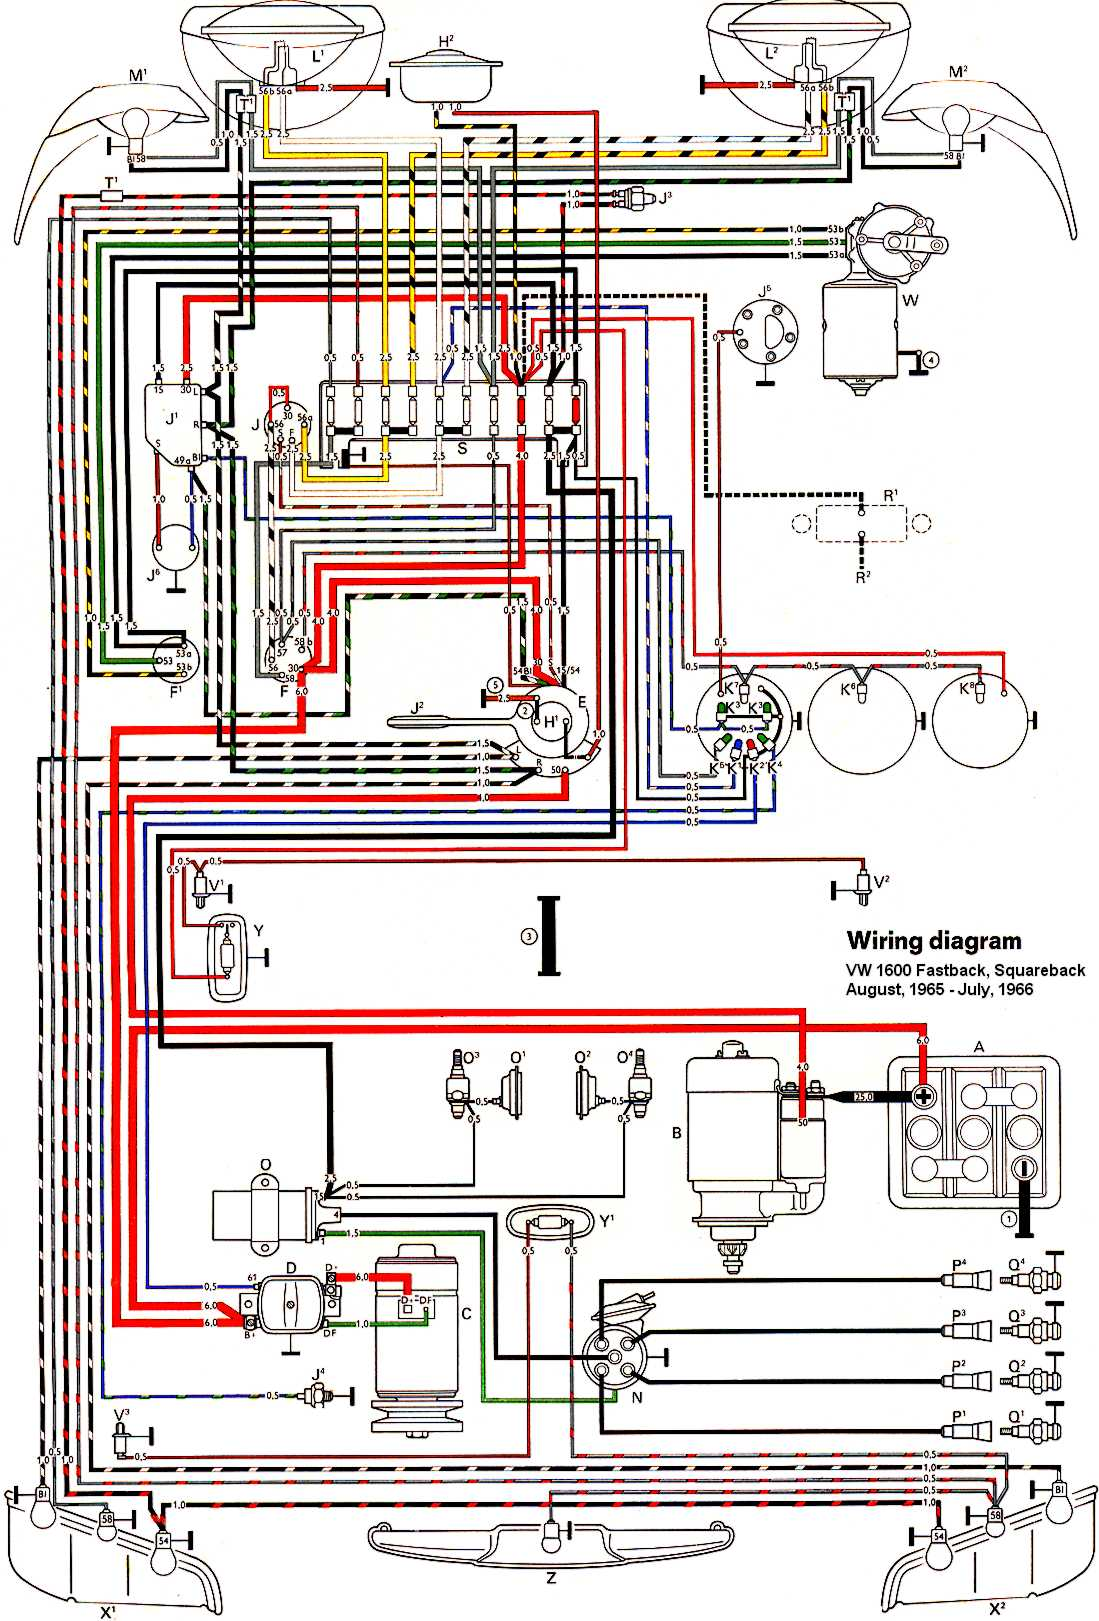 Thesamba Com Type 3 Wiring Diagrams Type 1 VW Engine Diagram Vw Type 3 Wiring  Diagram